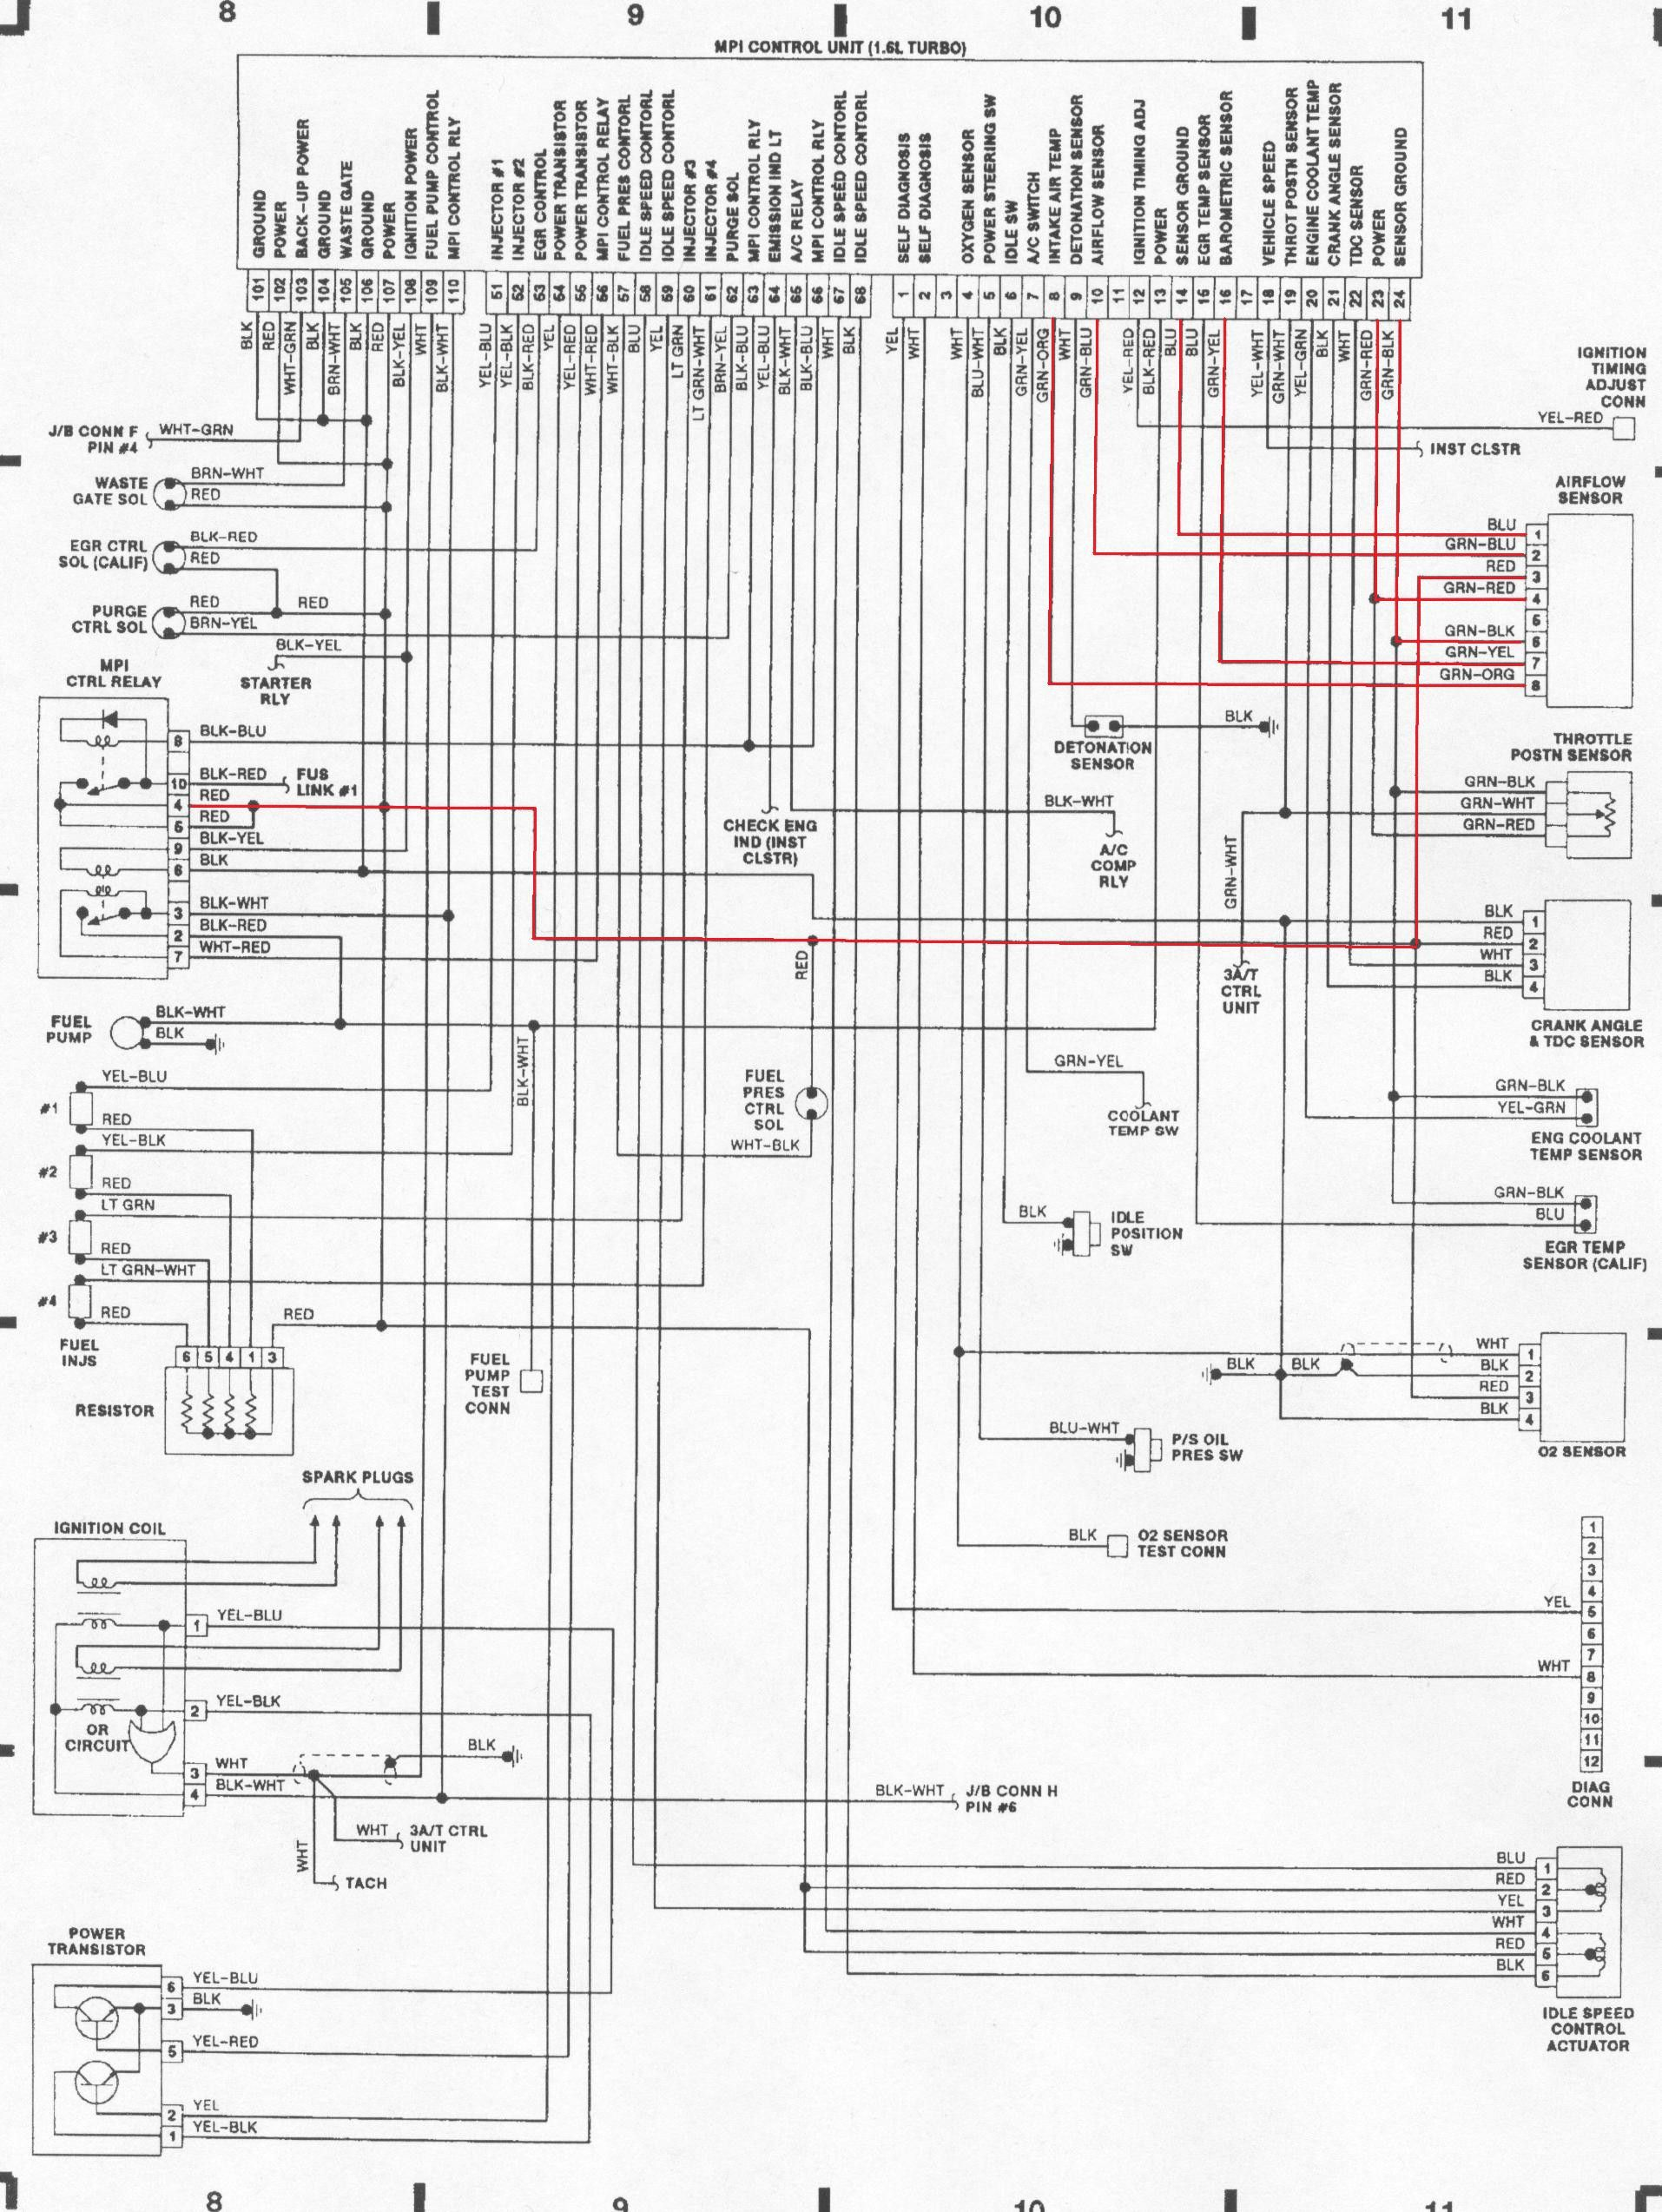 Wiring Diagram 4g15 Pdf Virtual Fretboard Inside Mitsubishi Mirage